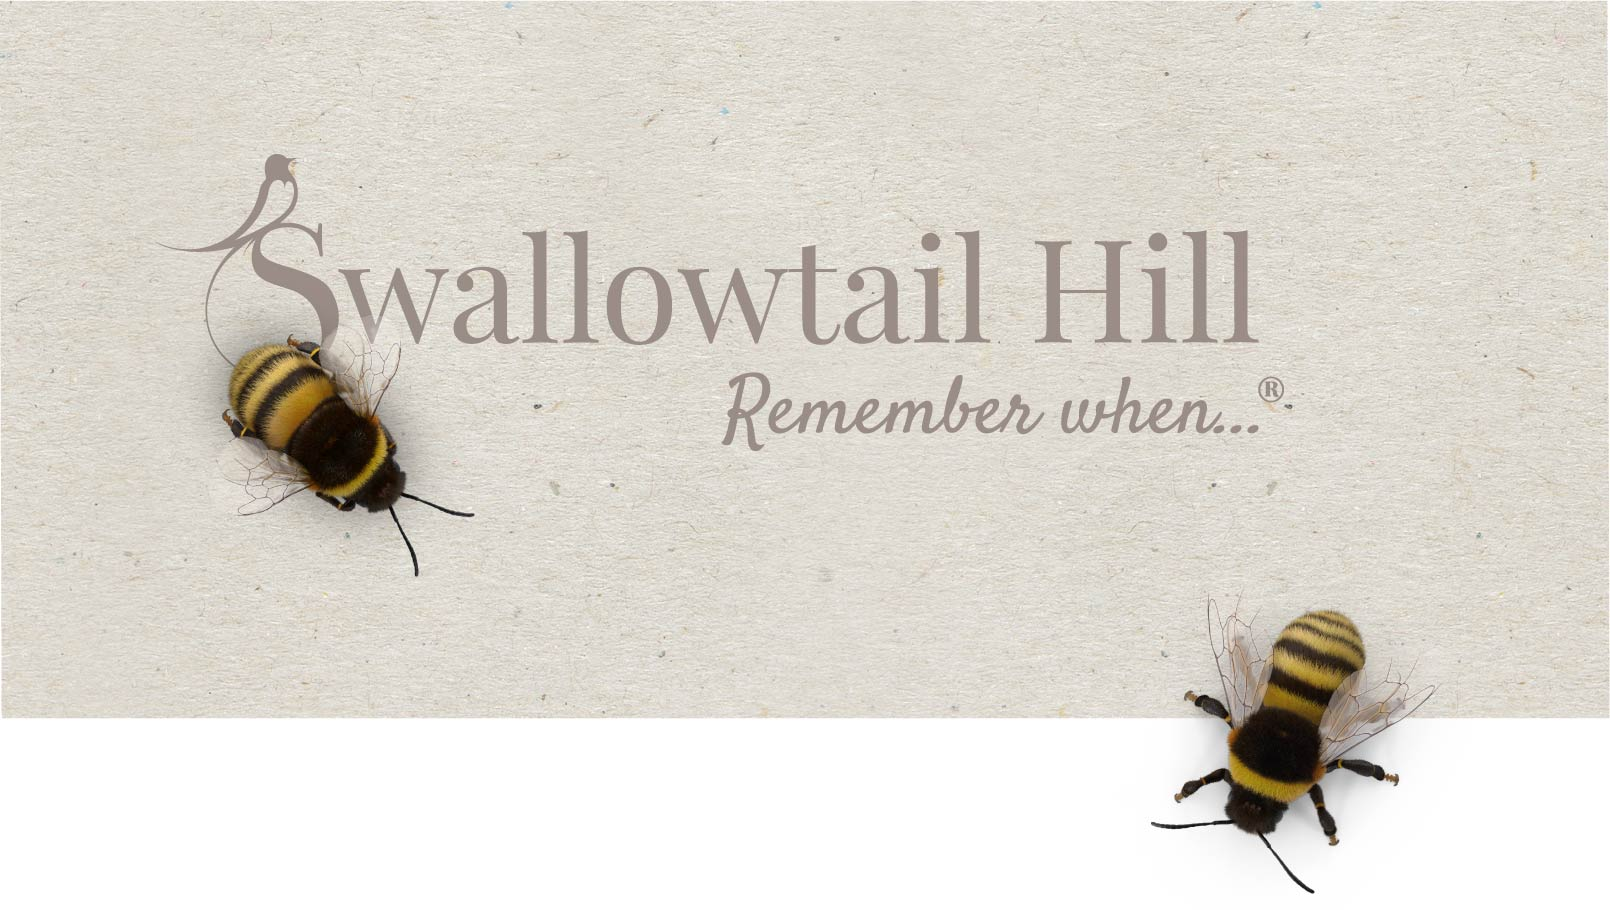 Swallowtail Hill logo design and bumble bees.